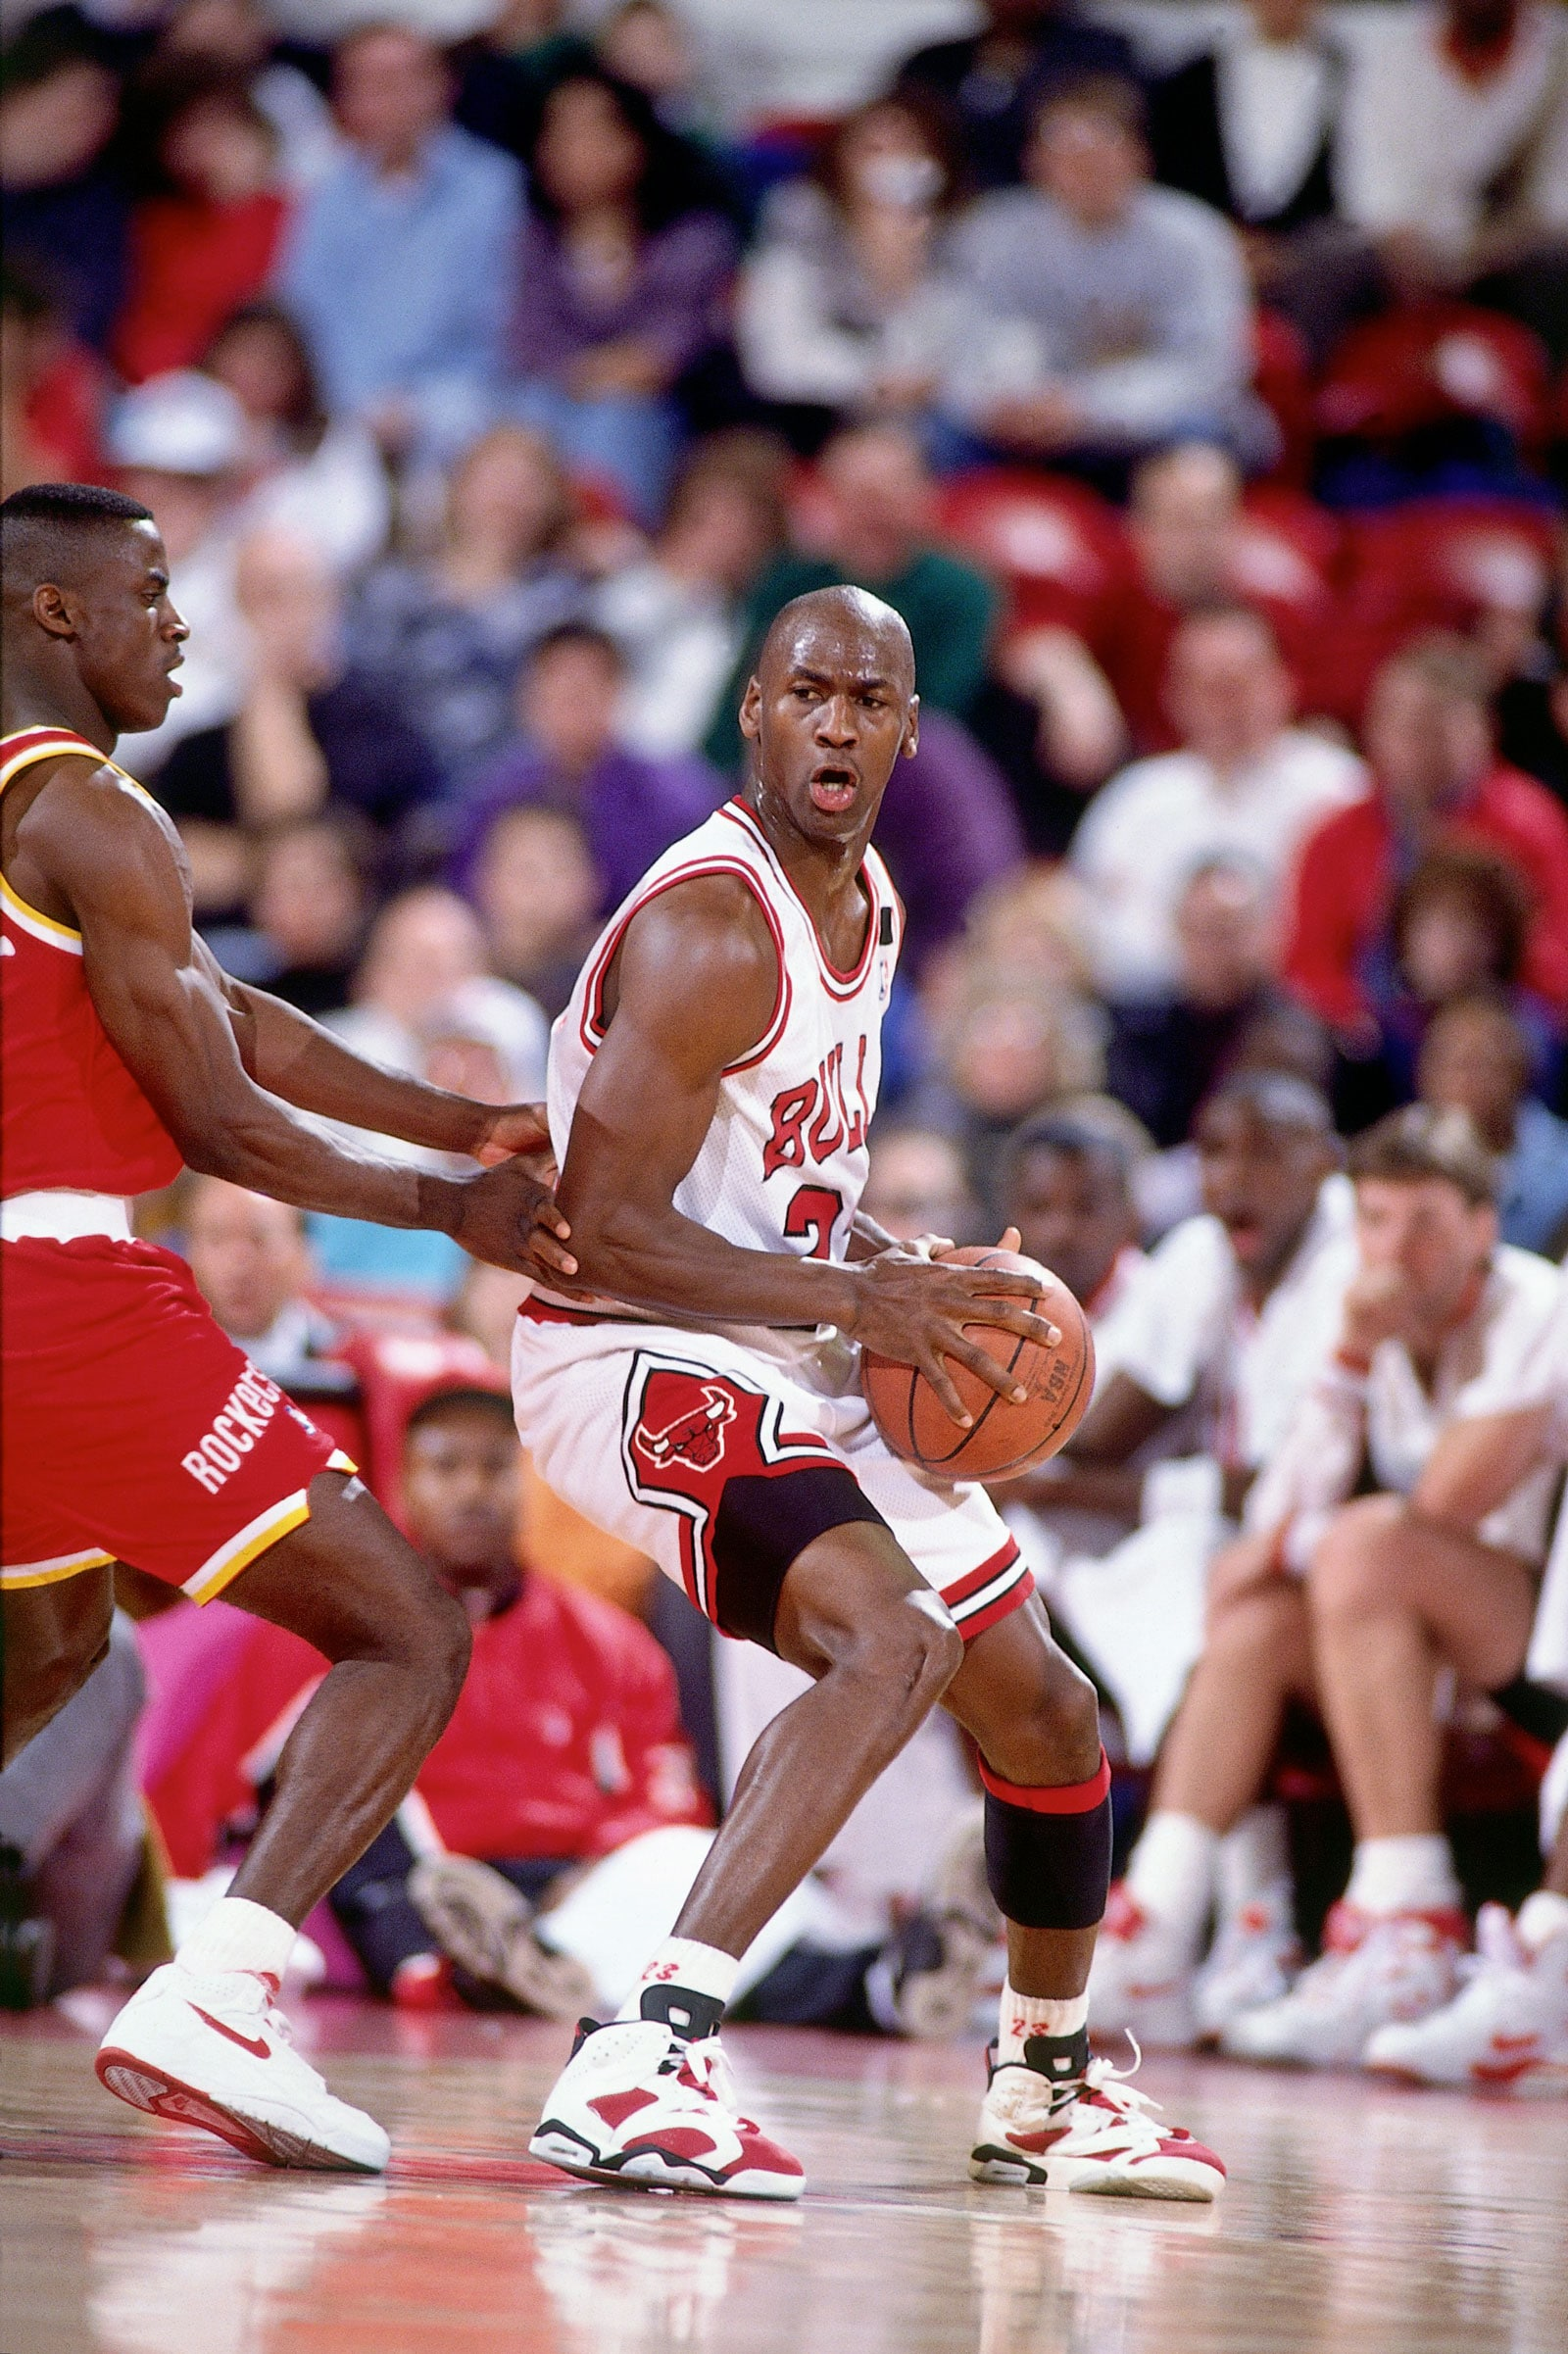 Michael Jordan #23 of the Chicago Bulls posts up against Vernon Maxwell #10 of the Houston Rockets during a game circa 1992 played at Chicago Stadium in Chicago, Illinois.